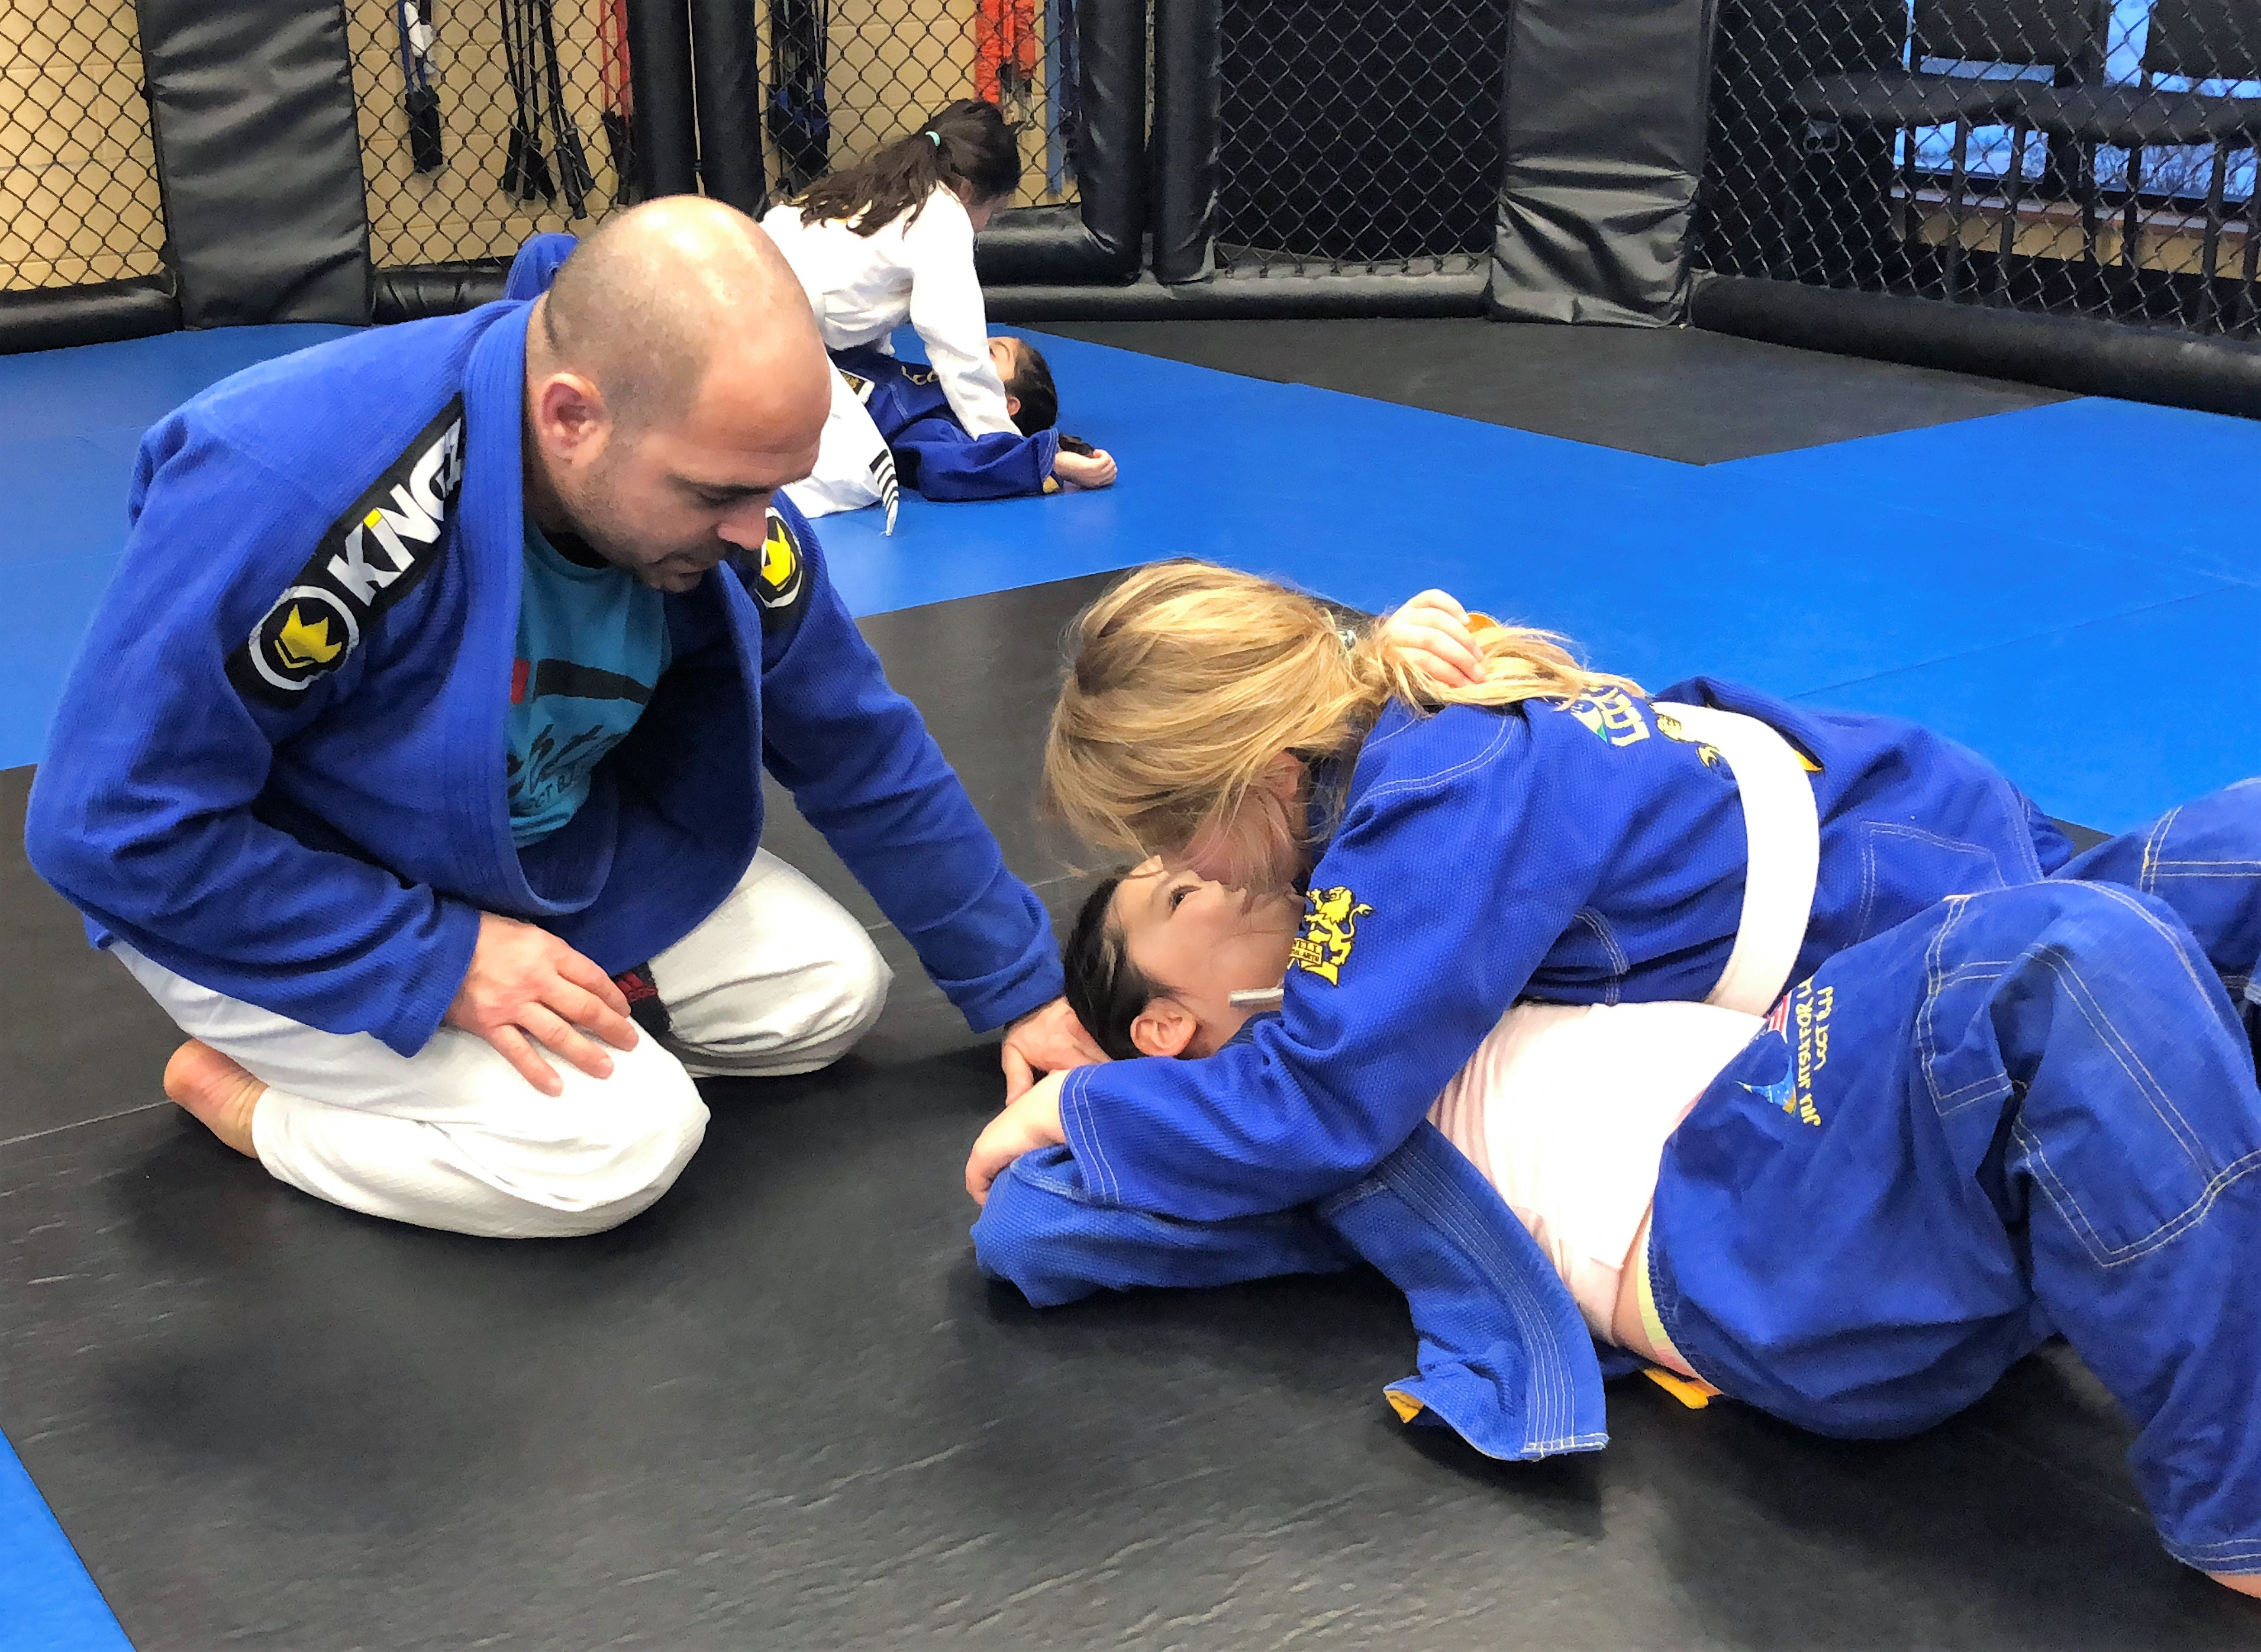 FREE YOUTH SELF-DEFENSE TRIAL CLASS